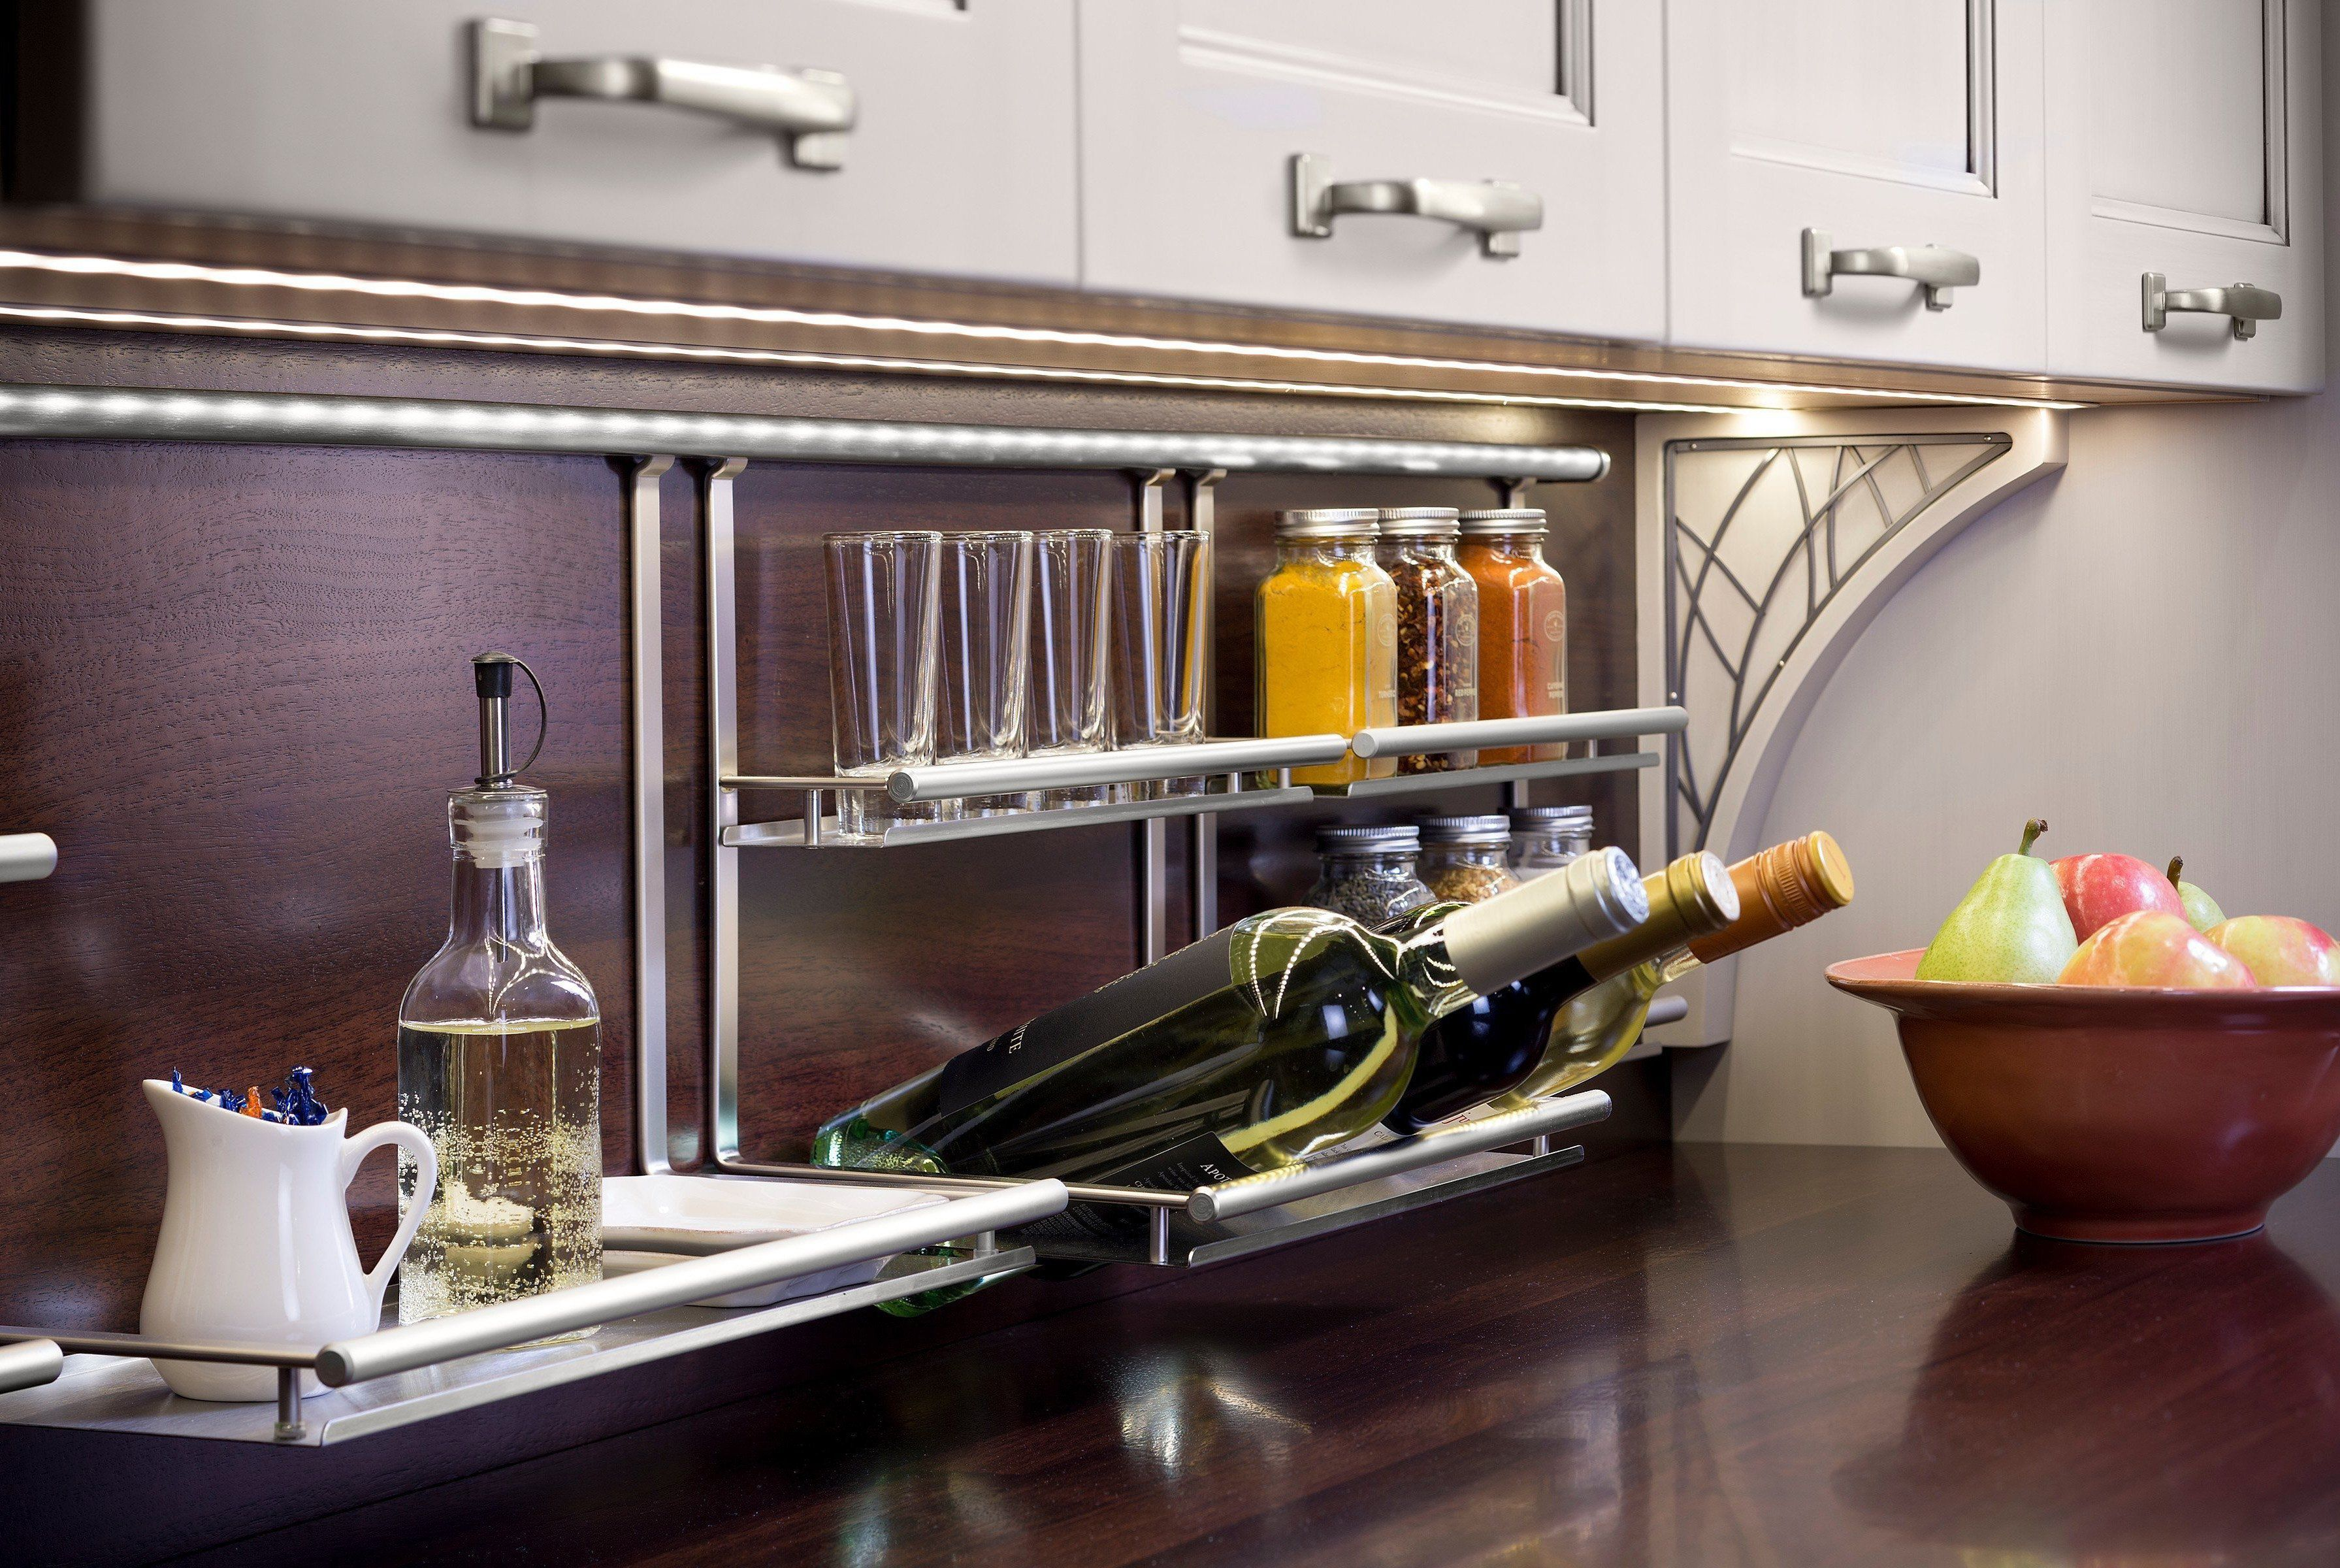 Kitchen Backsplash Storage System Linero Wood Countertops Hafele Backsplash